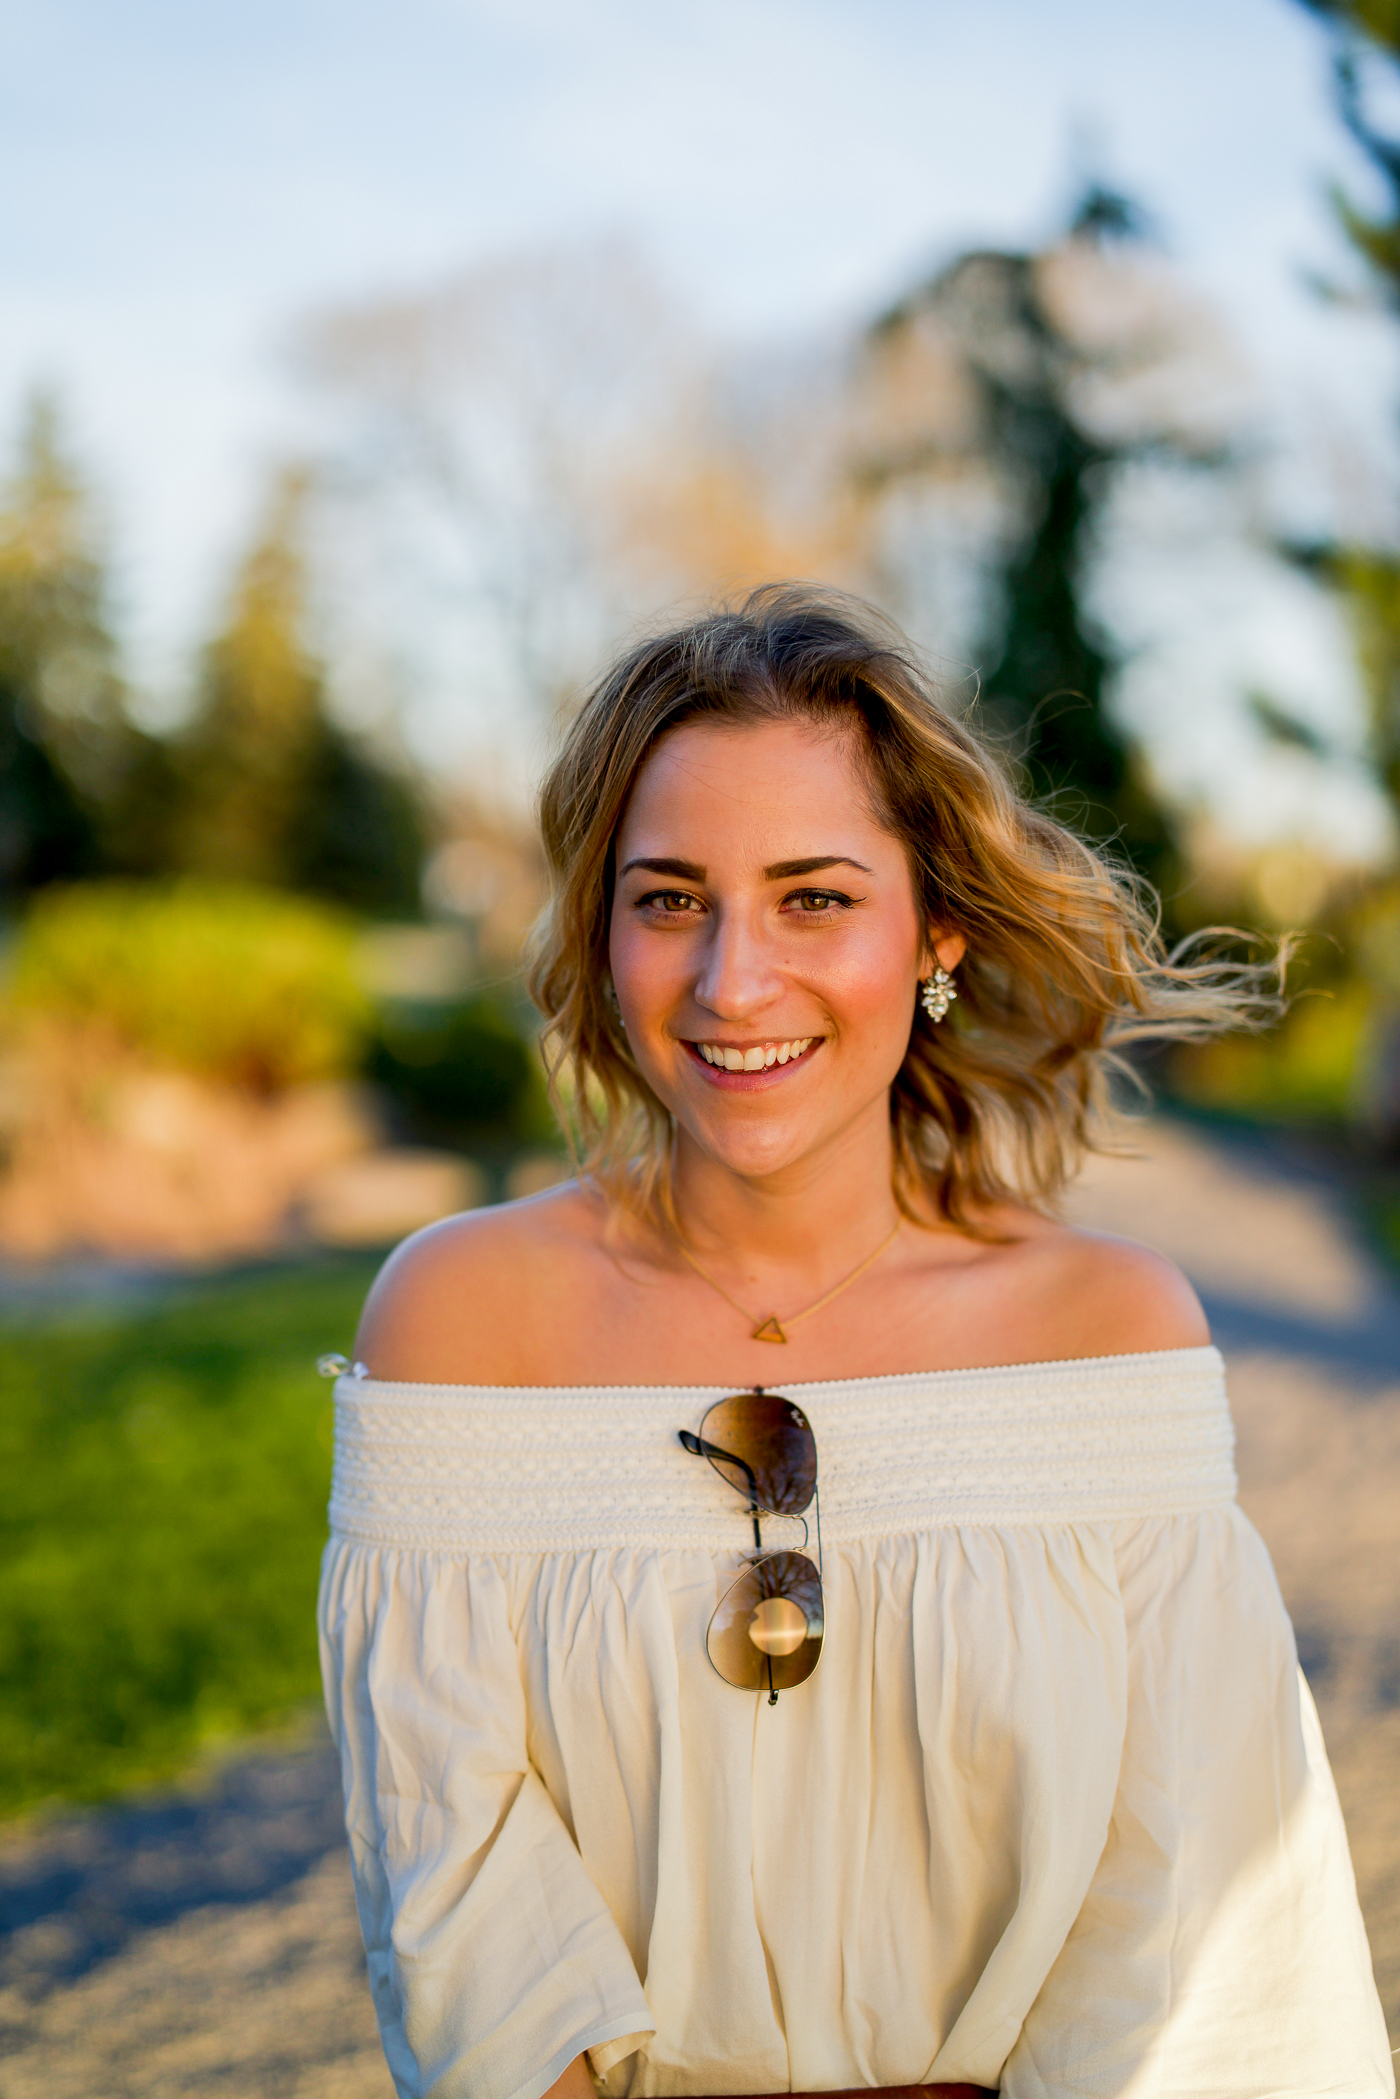 Jackie Goldhar is a Toronto fashion and lifestyle blogger, who's wearing an off the shoulder top with jeans because she found a perfect strapless bra at Coup de Foudre in Aurora